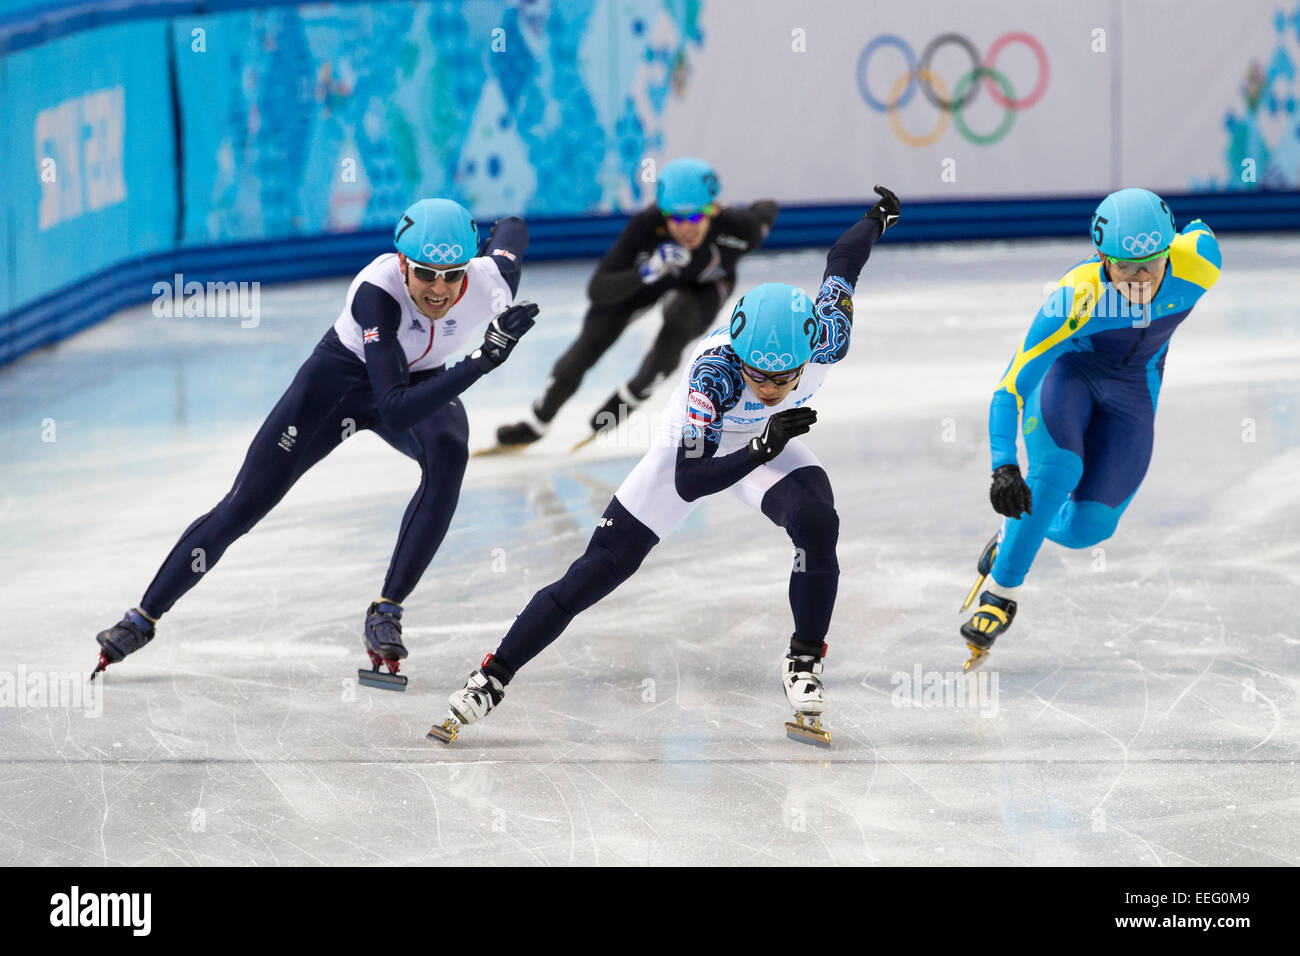 Short Track Speed Skating At The Olympic Winter Games